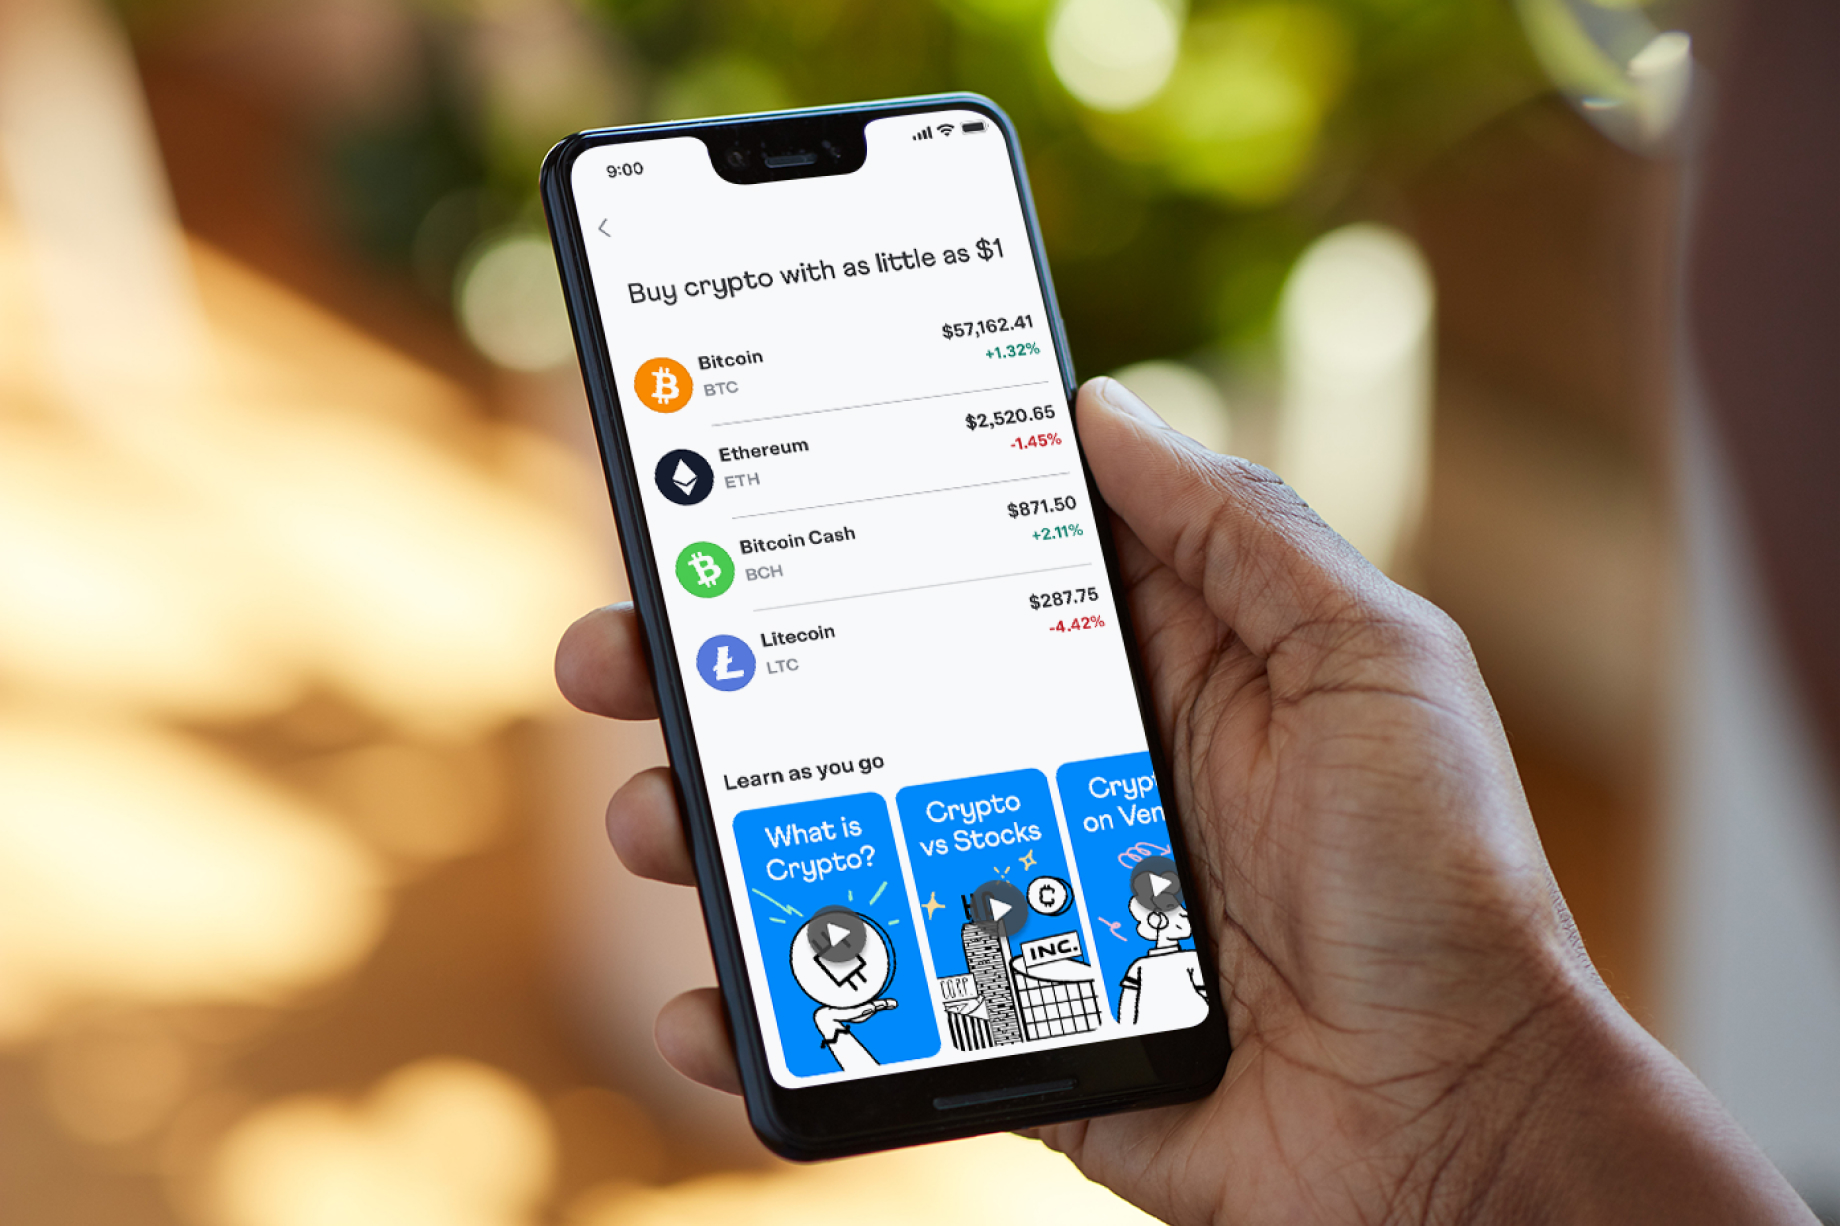 Venmo built crypto trading into its payments app